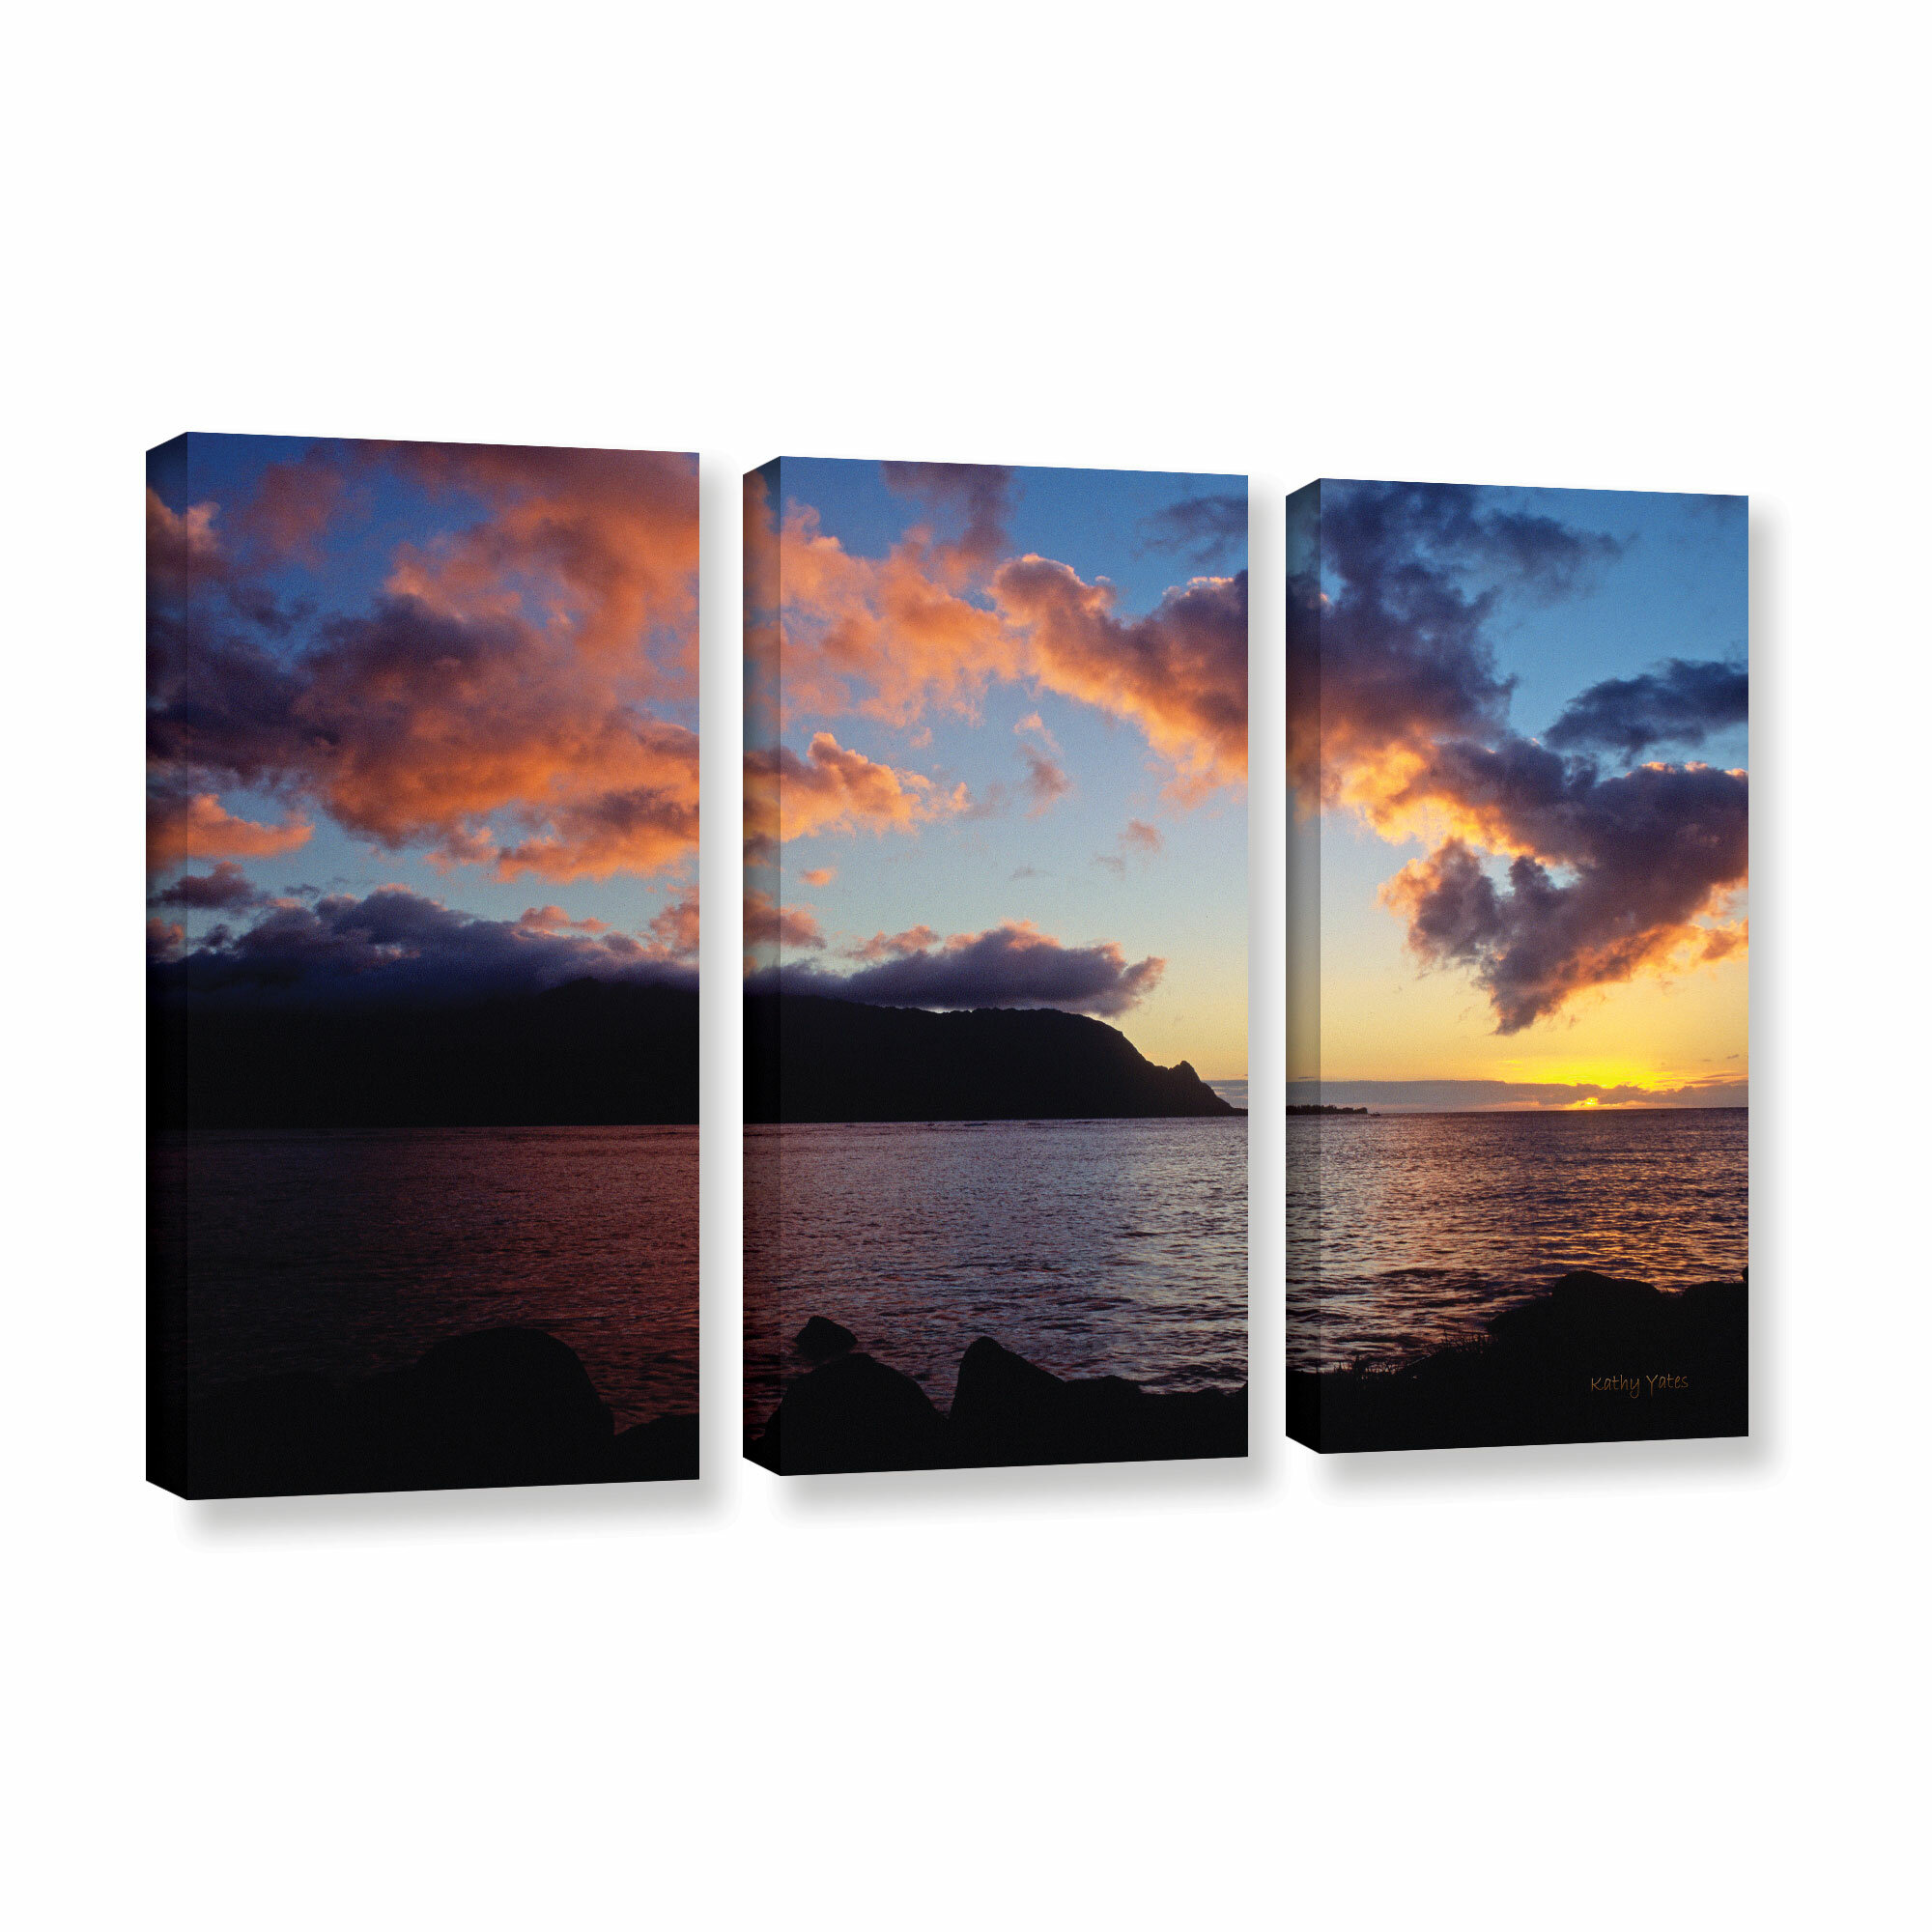 Artwall Kathy Yates Field Of Dreams 3 Piece Floater Framed Canvas Artwork 24 By 36 Posters Prints Home Kitchen